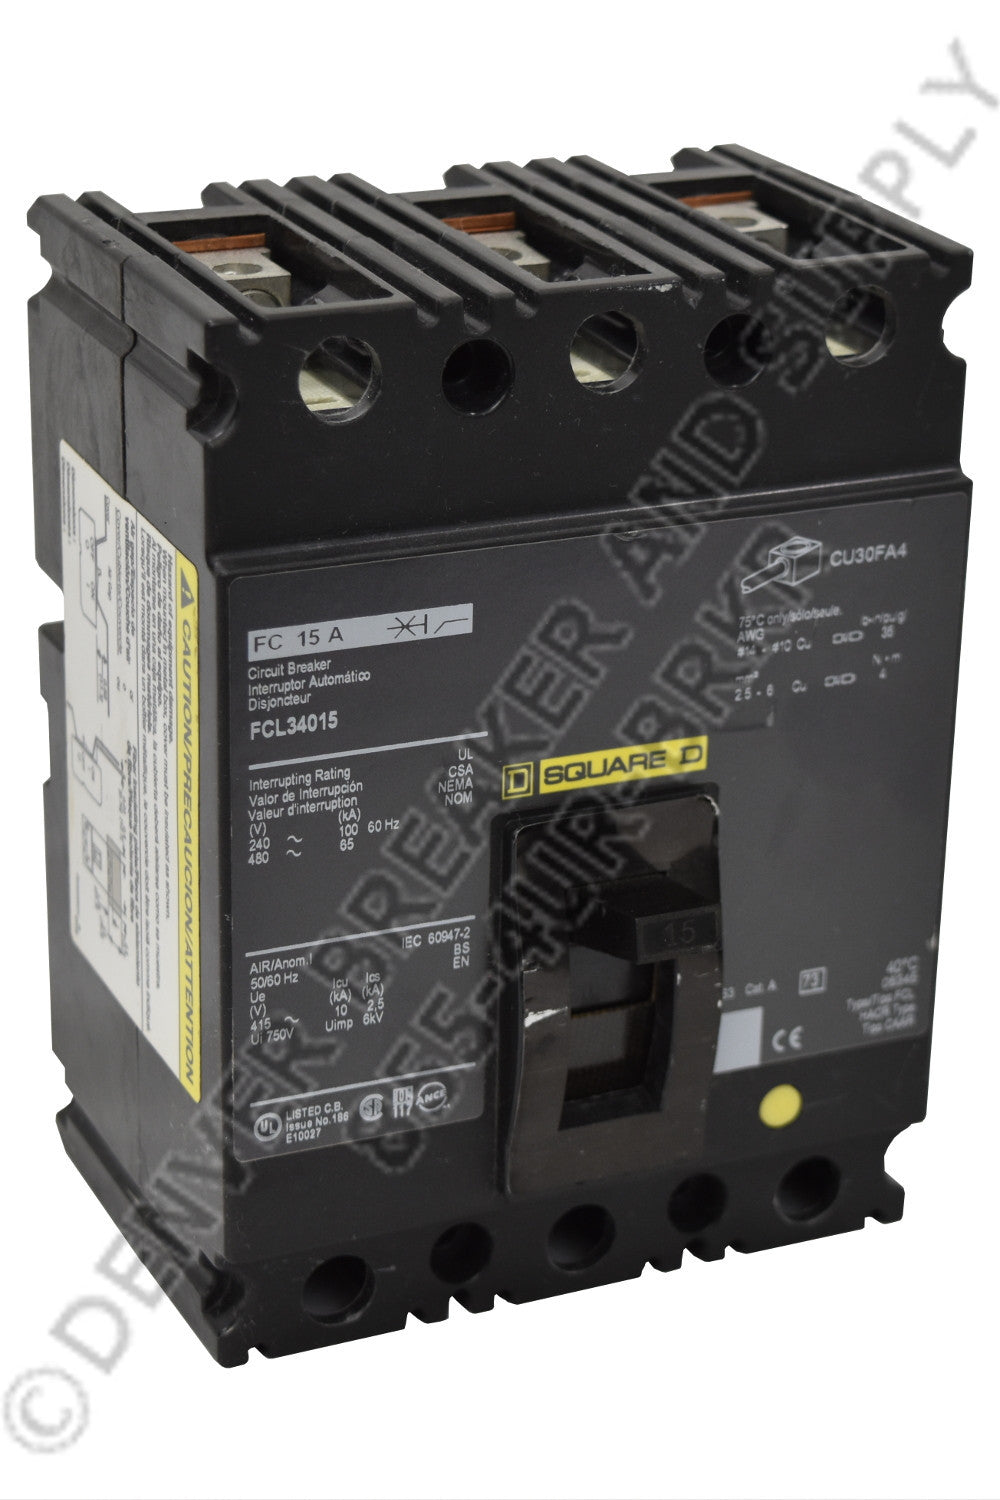 Square D FCP24045TF Circuit Breakers